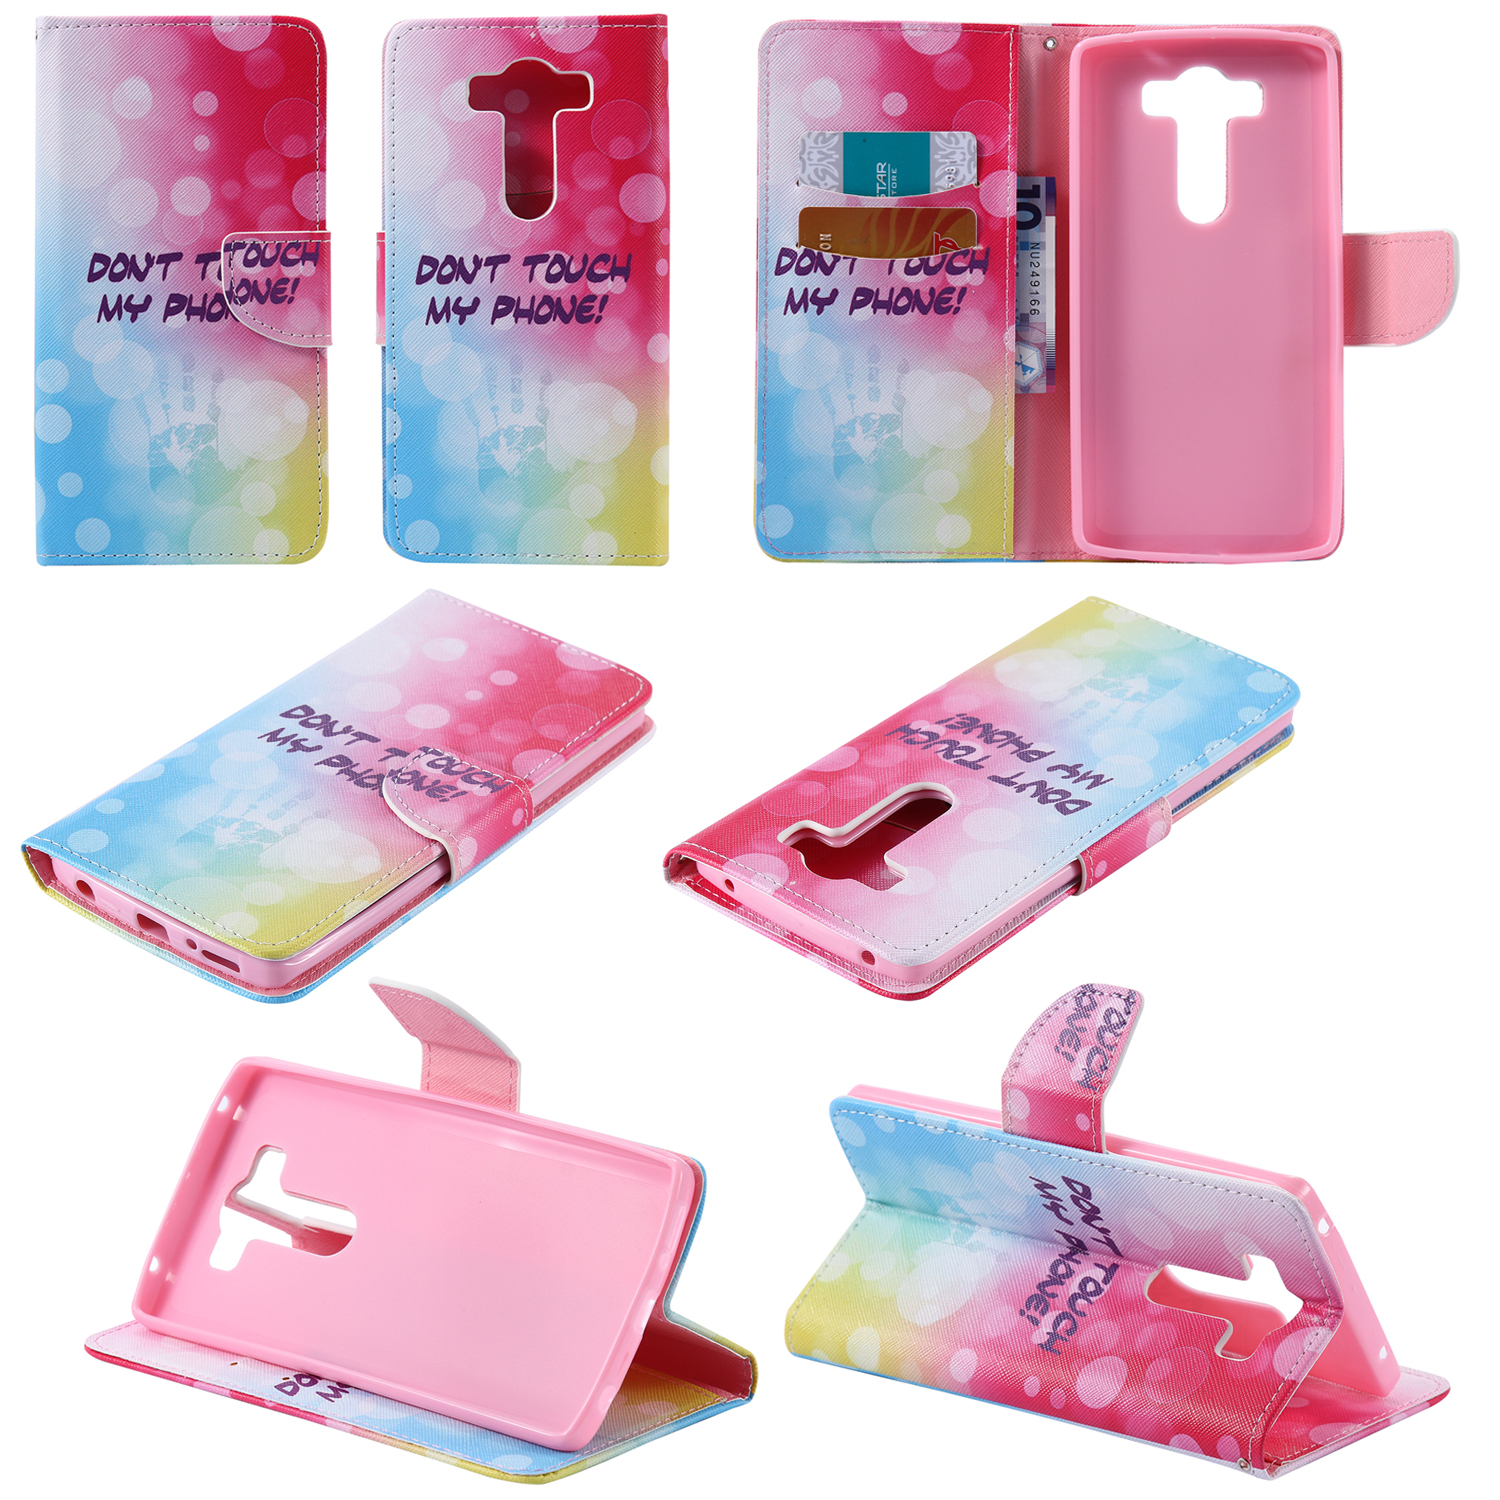 Built Silicone Base Leather Cover Case for LG V10 F600 H968 Coque Flip Wallet Card Holder Stand Protection Mobile Phone(China (Mainland))